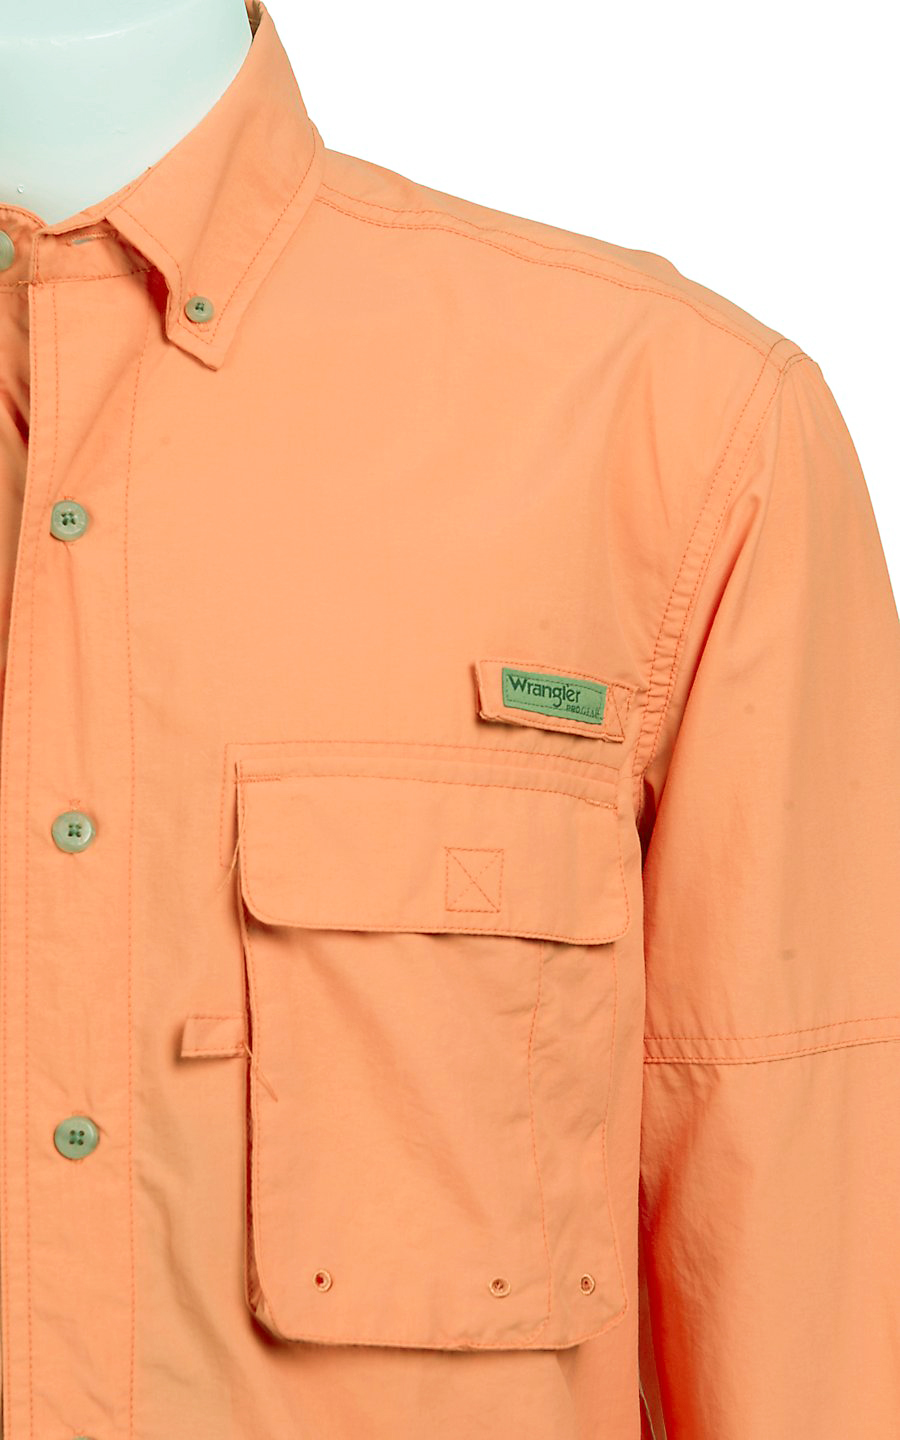 Wrangler Progear® LONG SLEEVE BUTTON DOWN ANGLER SOLID SHIRT